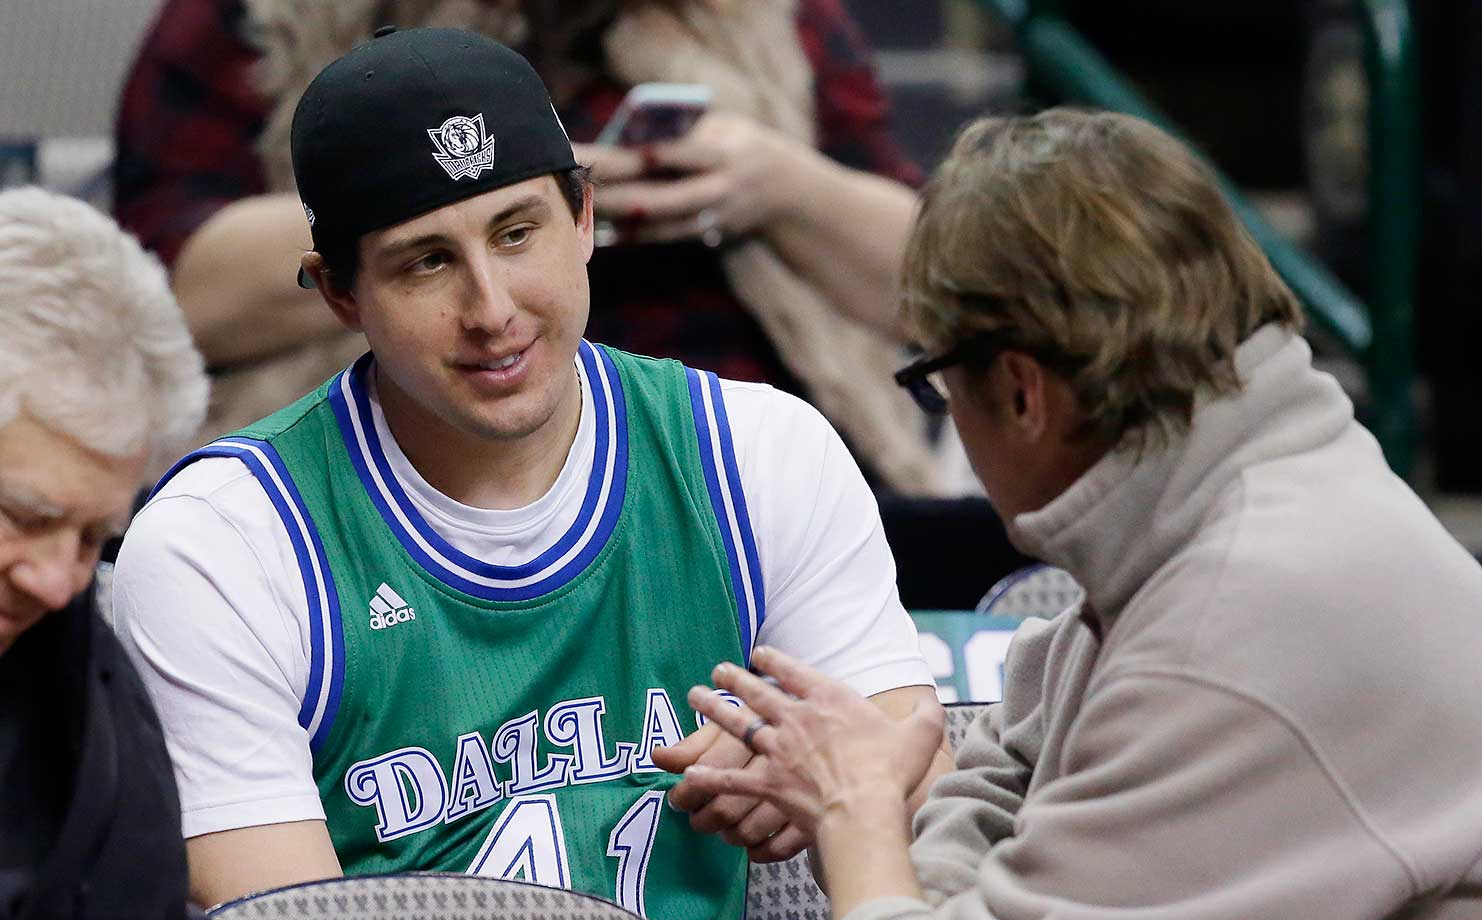 Texas Rangers pitcher Derek Holland sits in the stands before an NBA basketball game between the Minnesota Timberwolves and Dallas Mavericks.